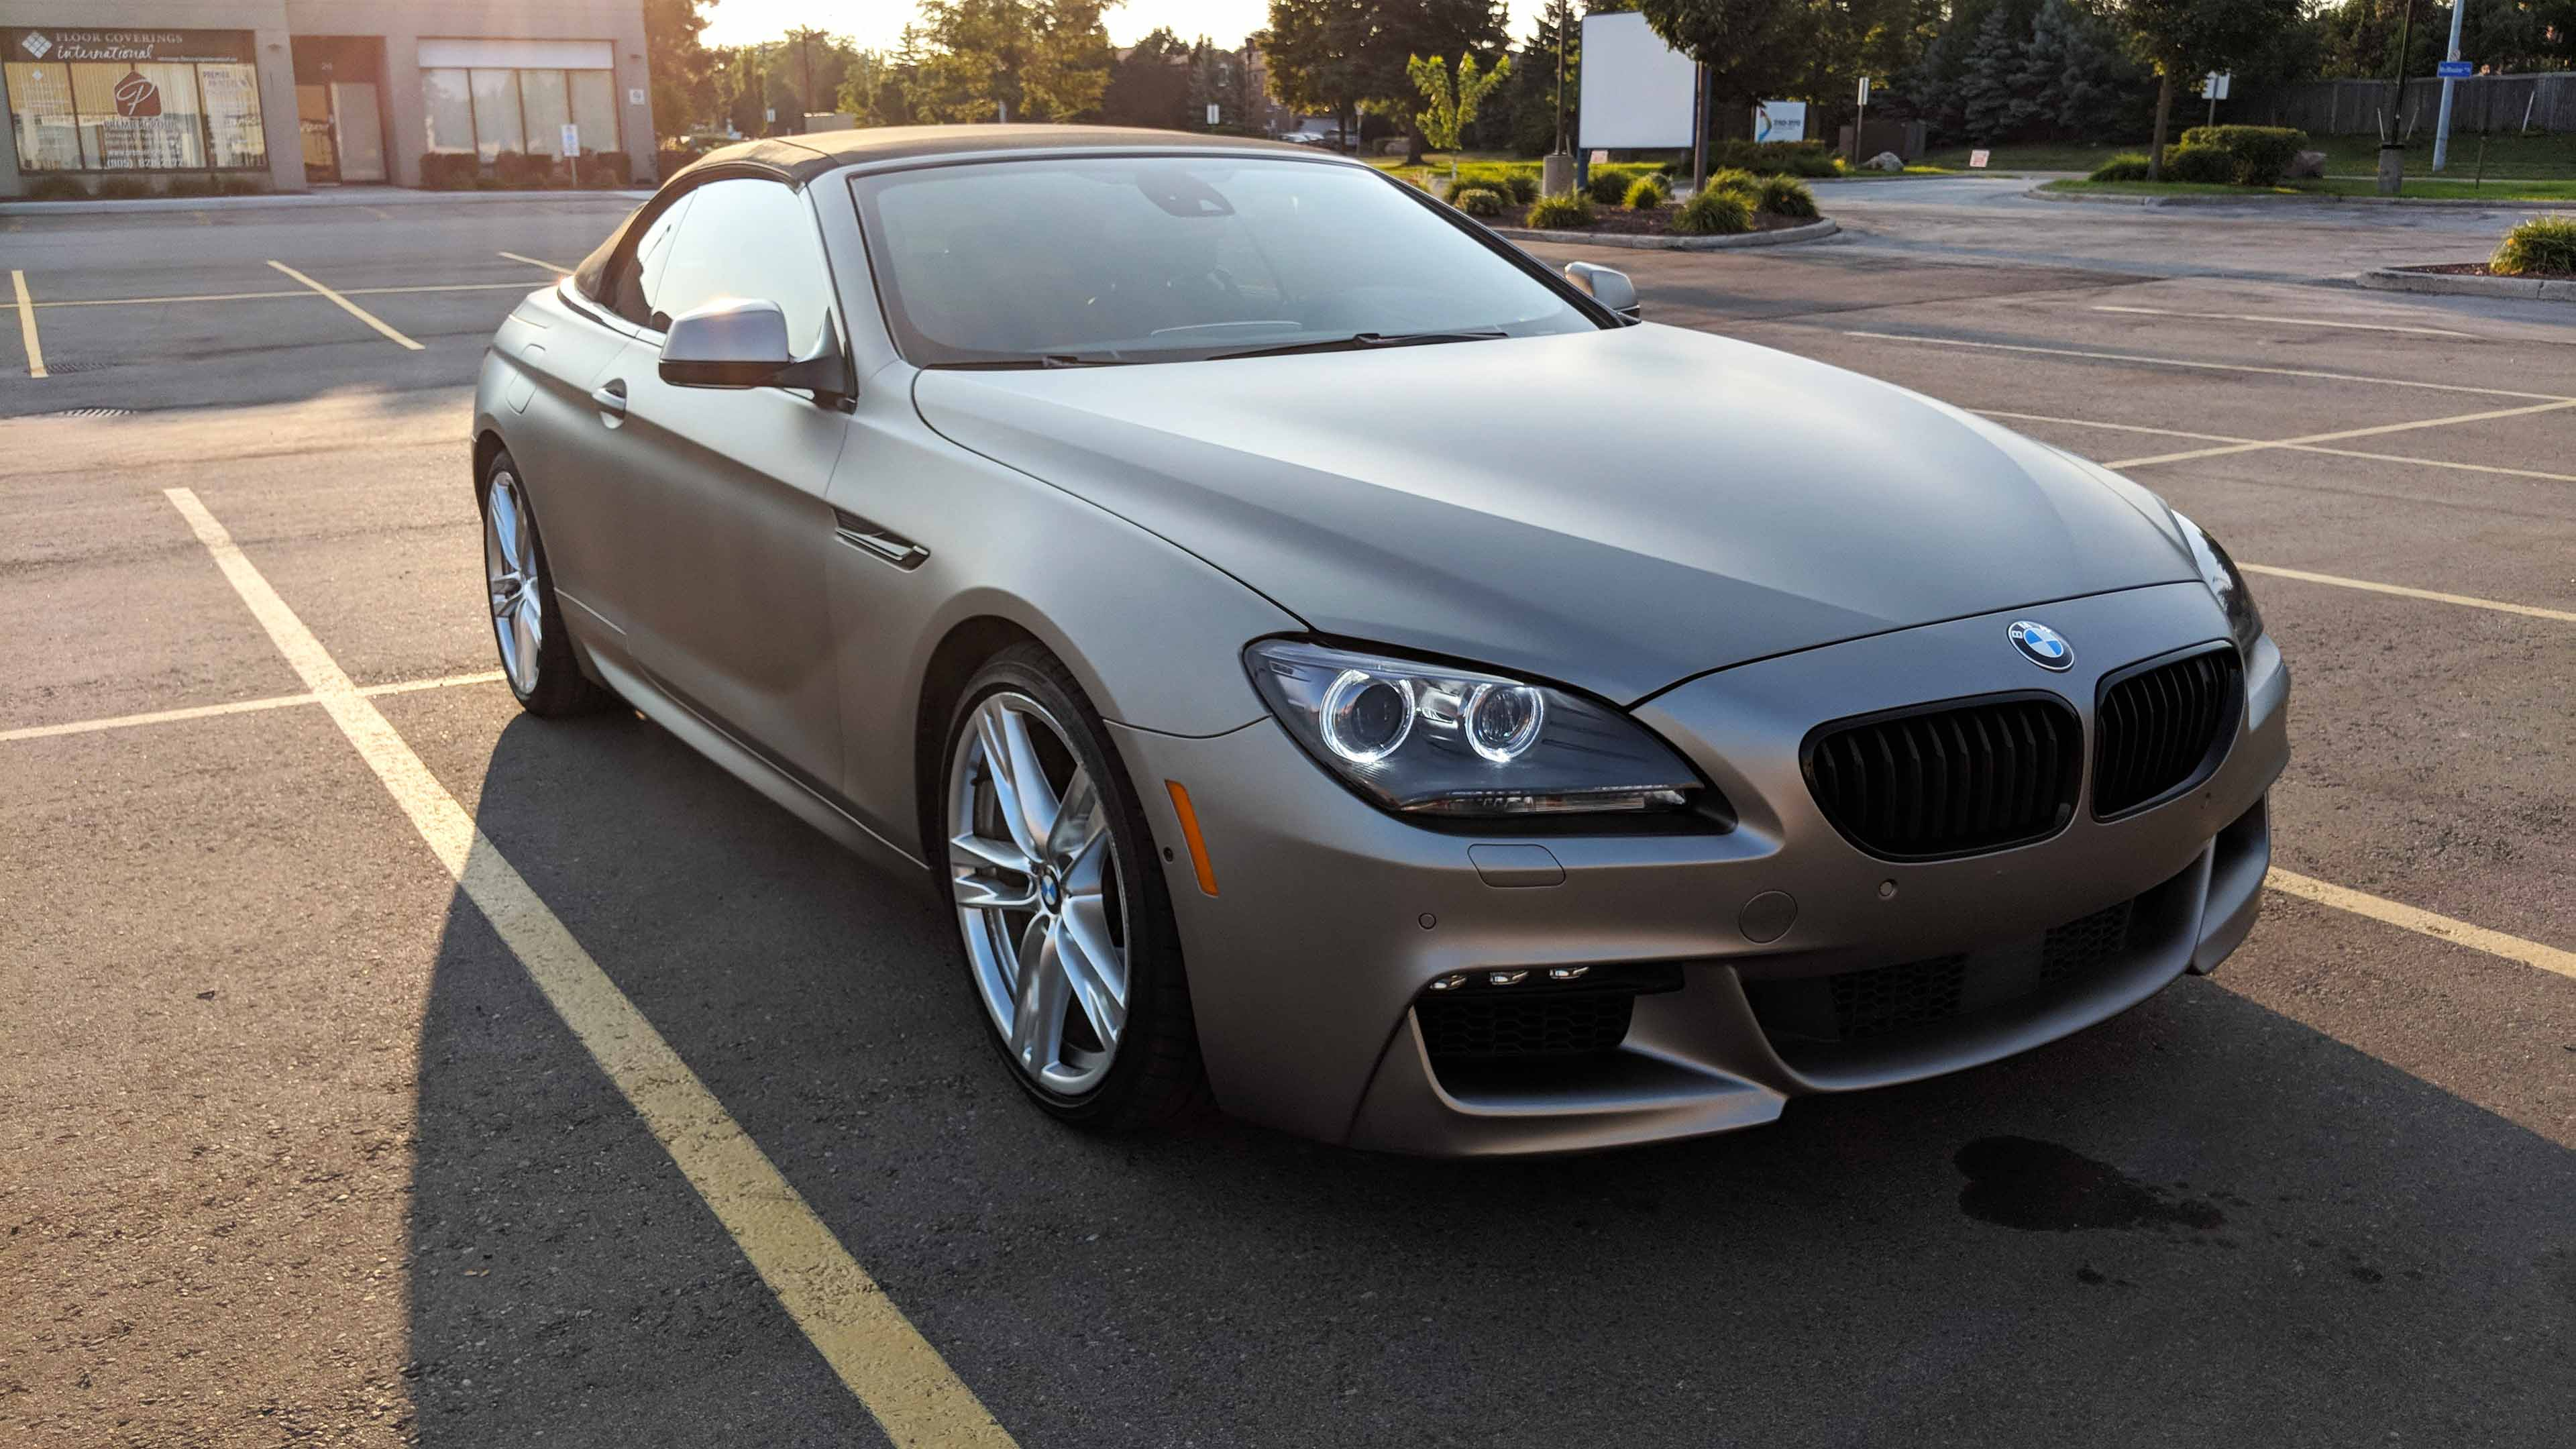 BMW 65i wrap in 3m matt grey aluminum with chrome delete